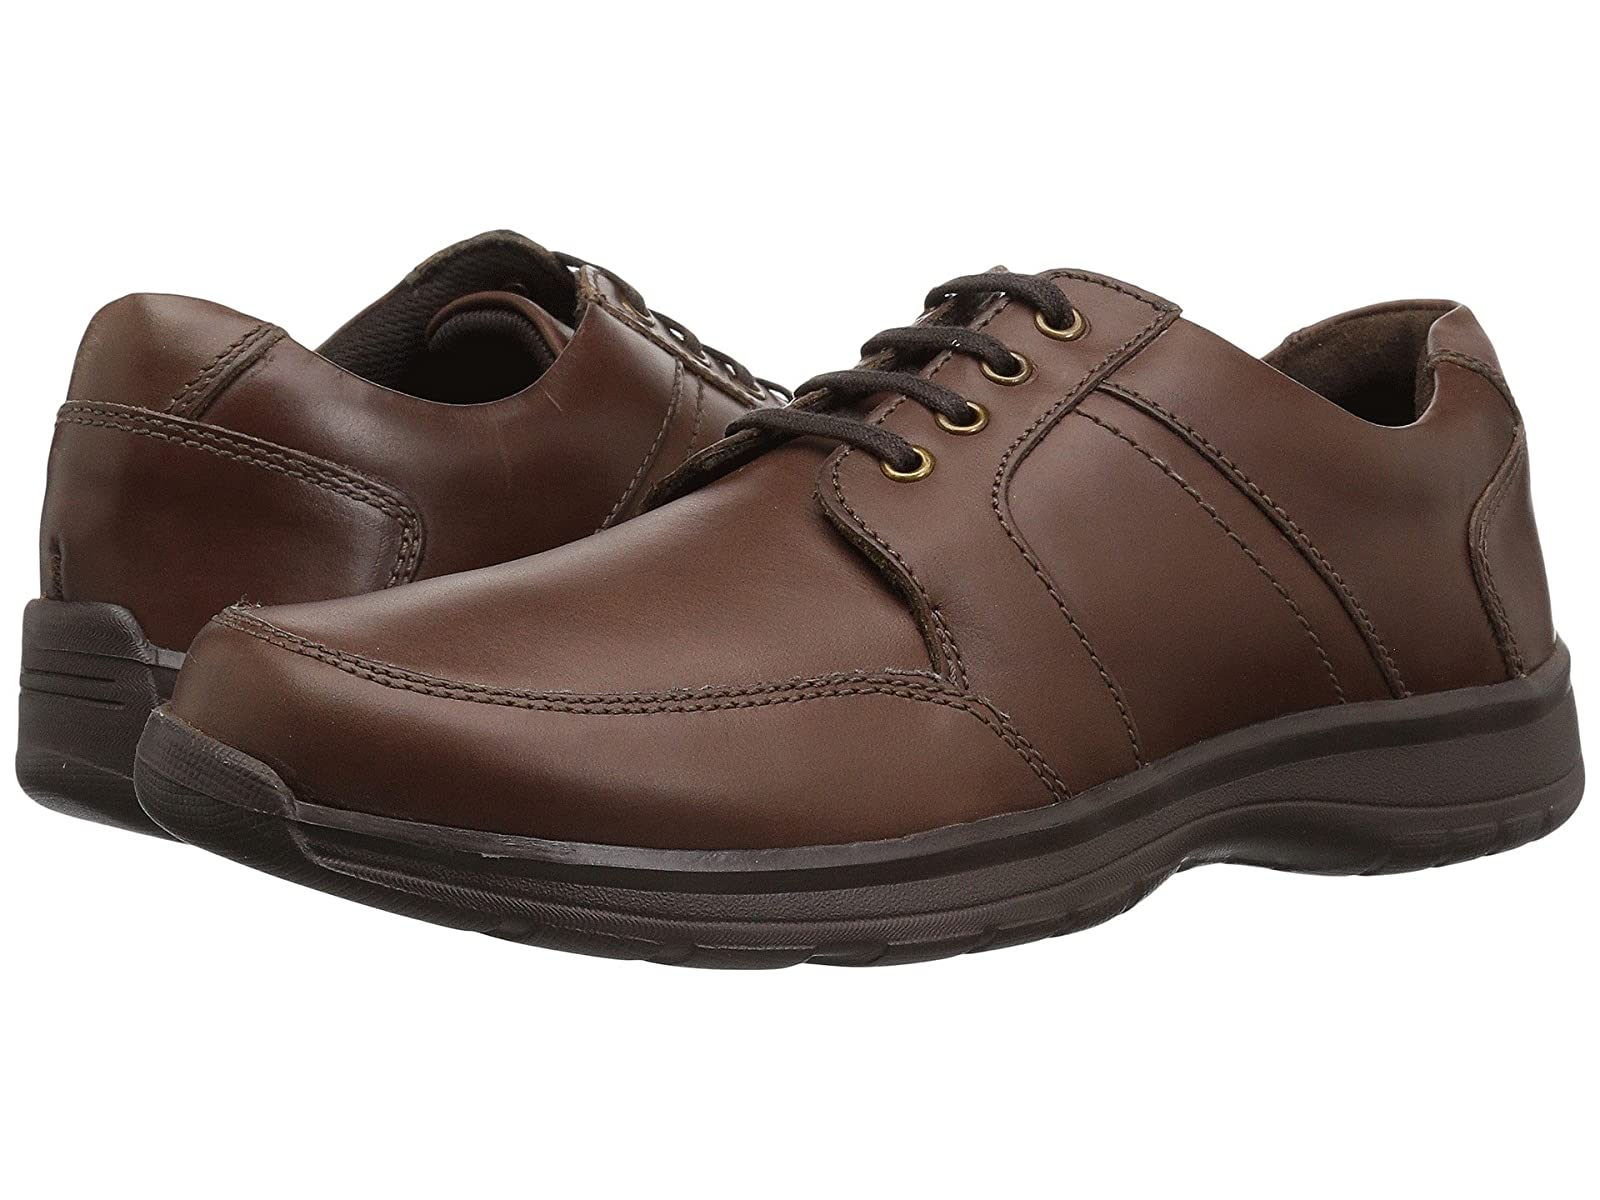 Hush Puppies Leader HensonAtmospheric grades have affordable shoes